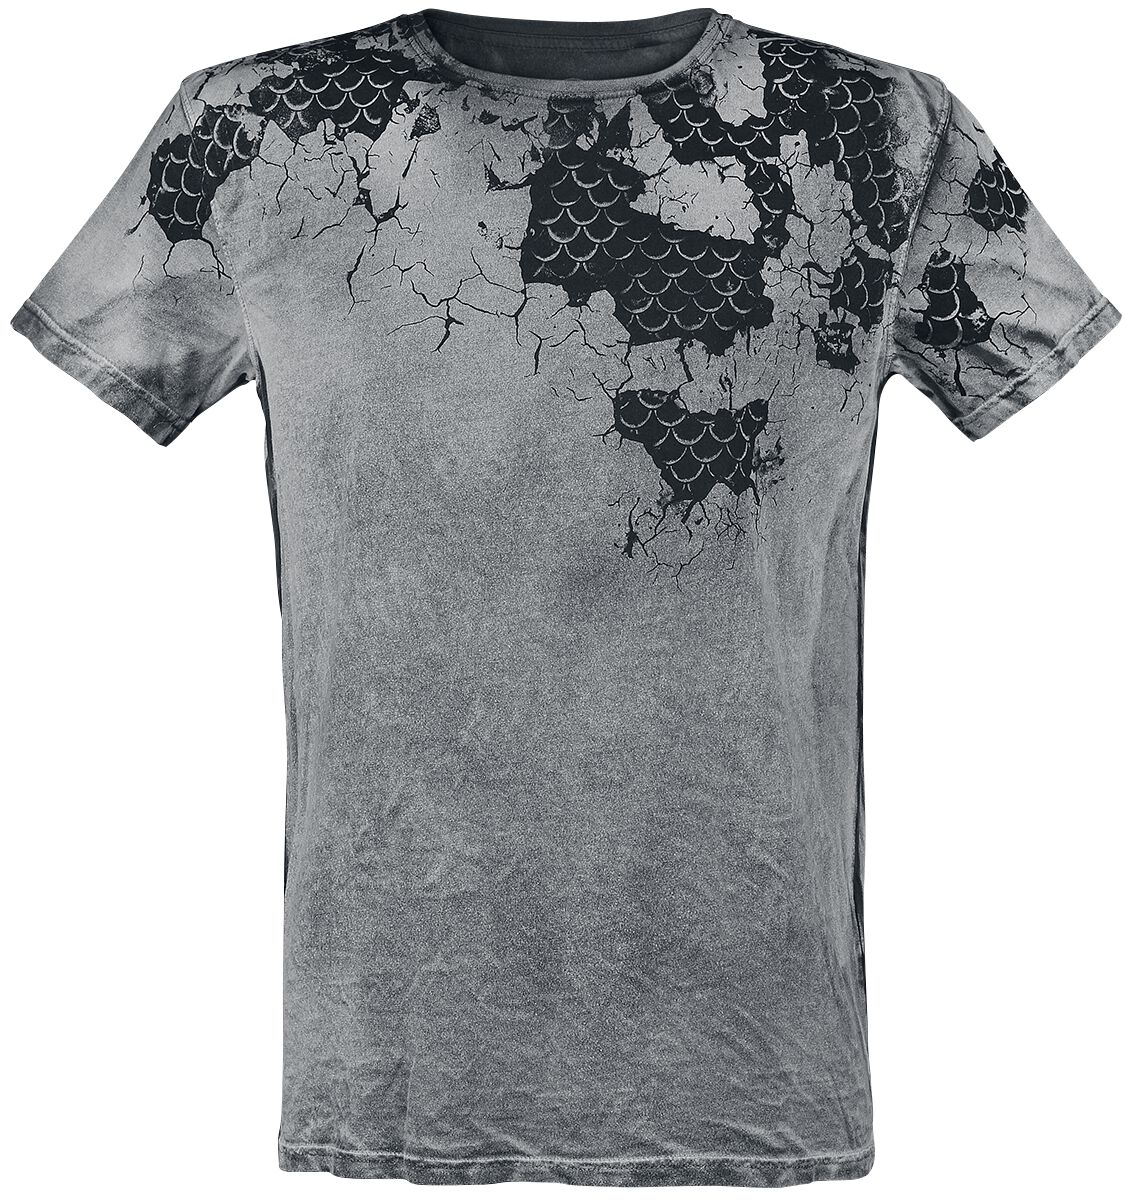 Outer Vision Scales Inside T-Shirt grau 9672-OV Mans T-Shirt Scales Inside Spray Washed Bl